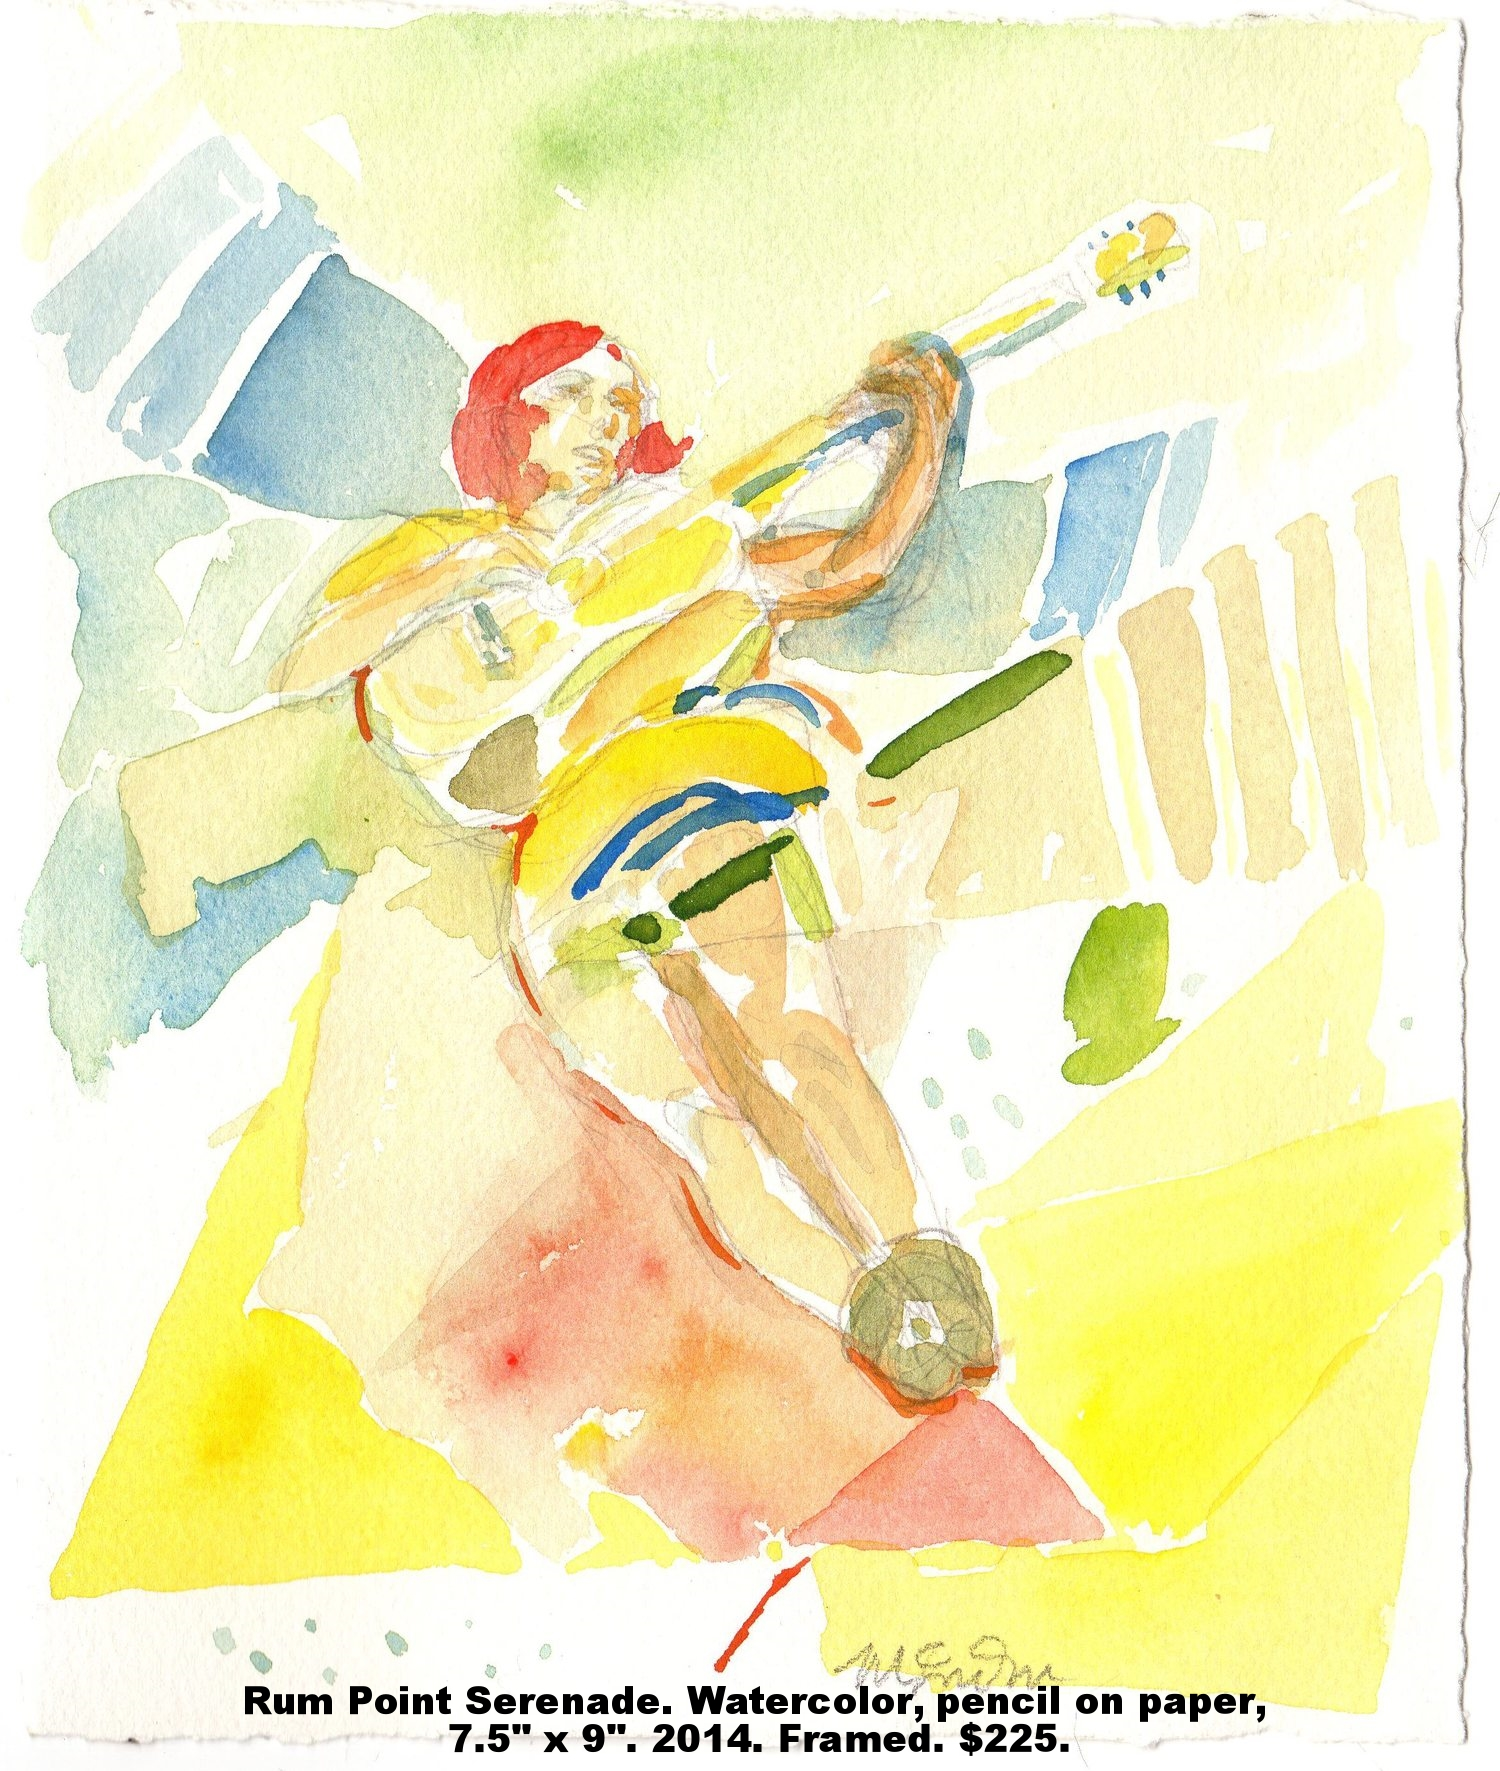 9 Fred Wise Rum Point Serenade Watercolor and pencil on paper 7.5 in x 9 in. 2014.jpg